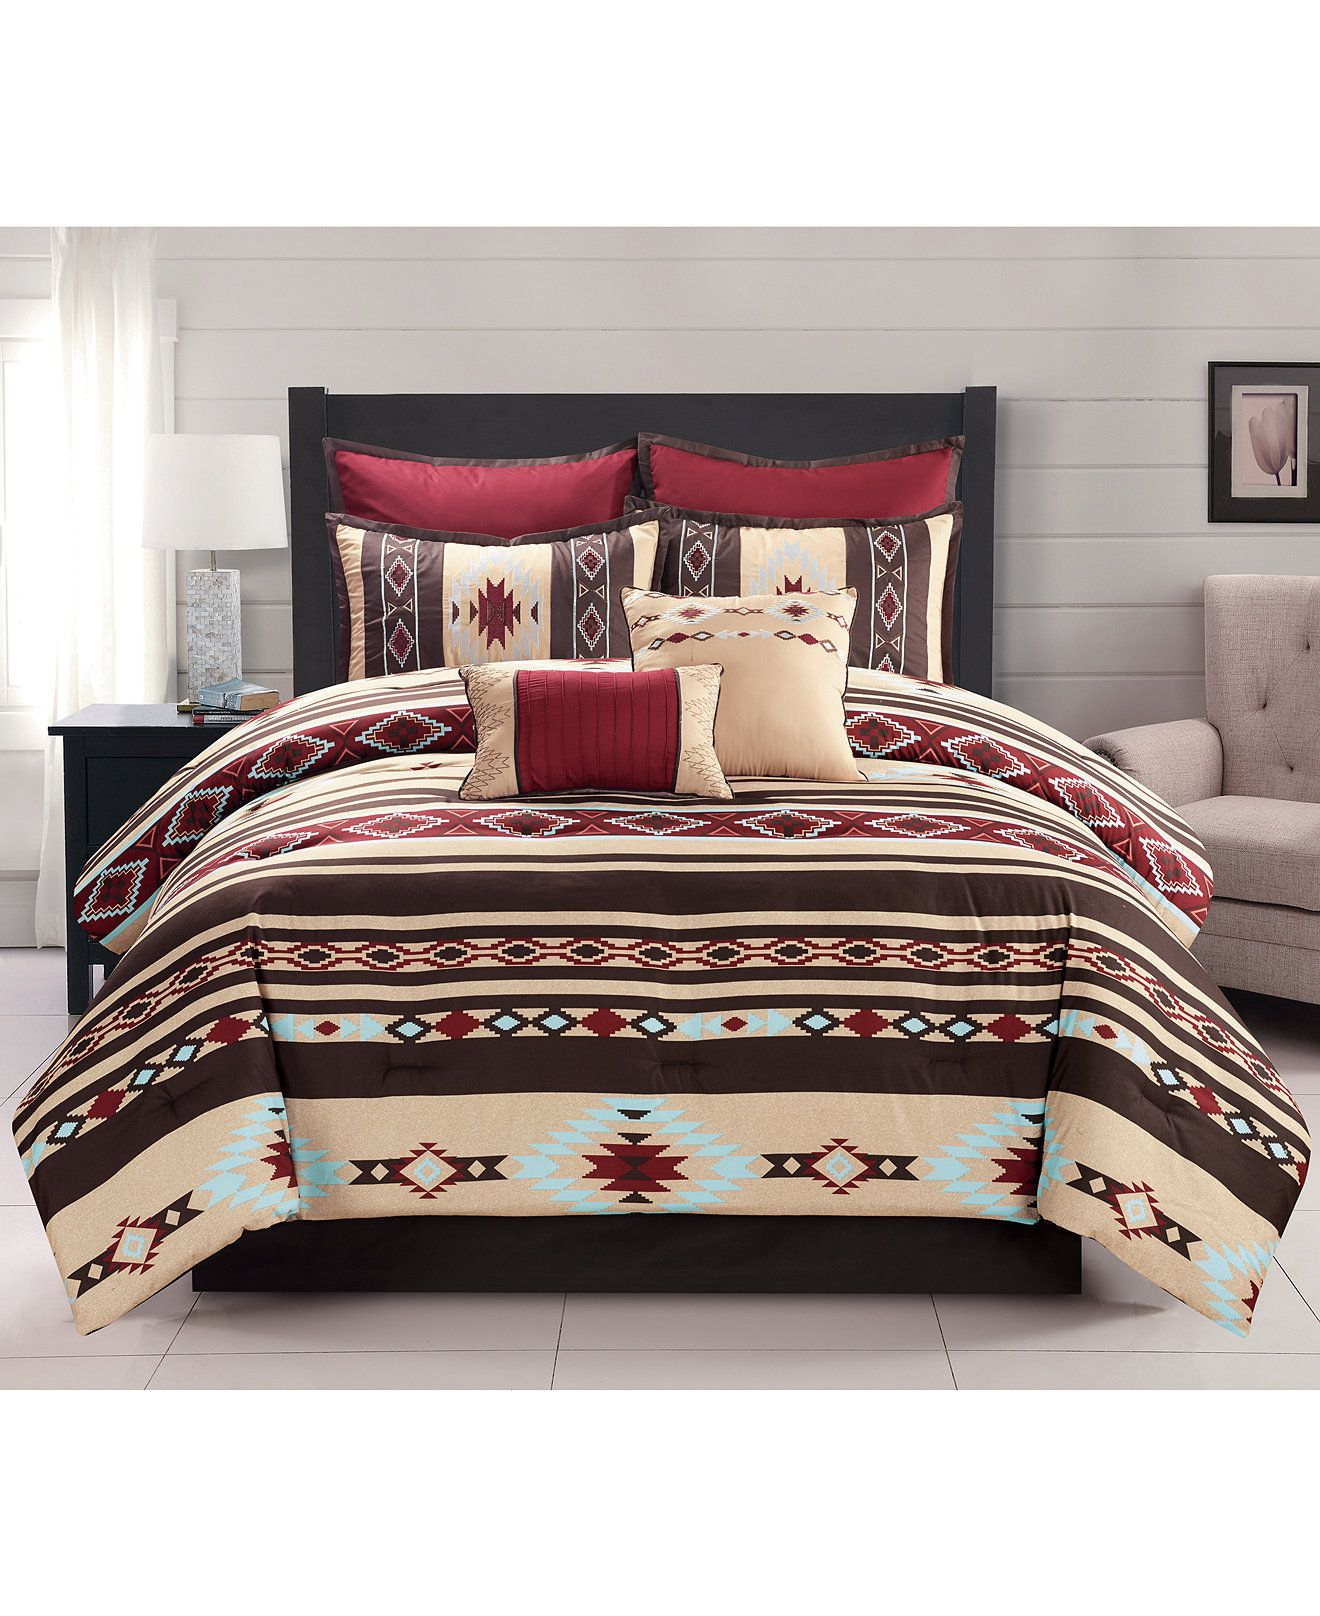 Buckeye 8Pc. Comforter Sets Bed in a Bag Bed & Bath